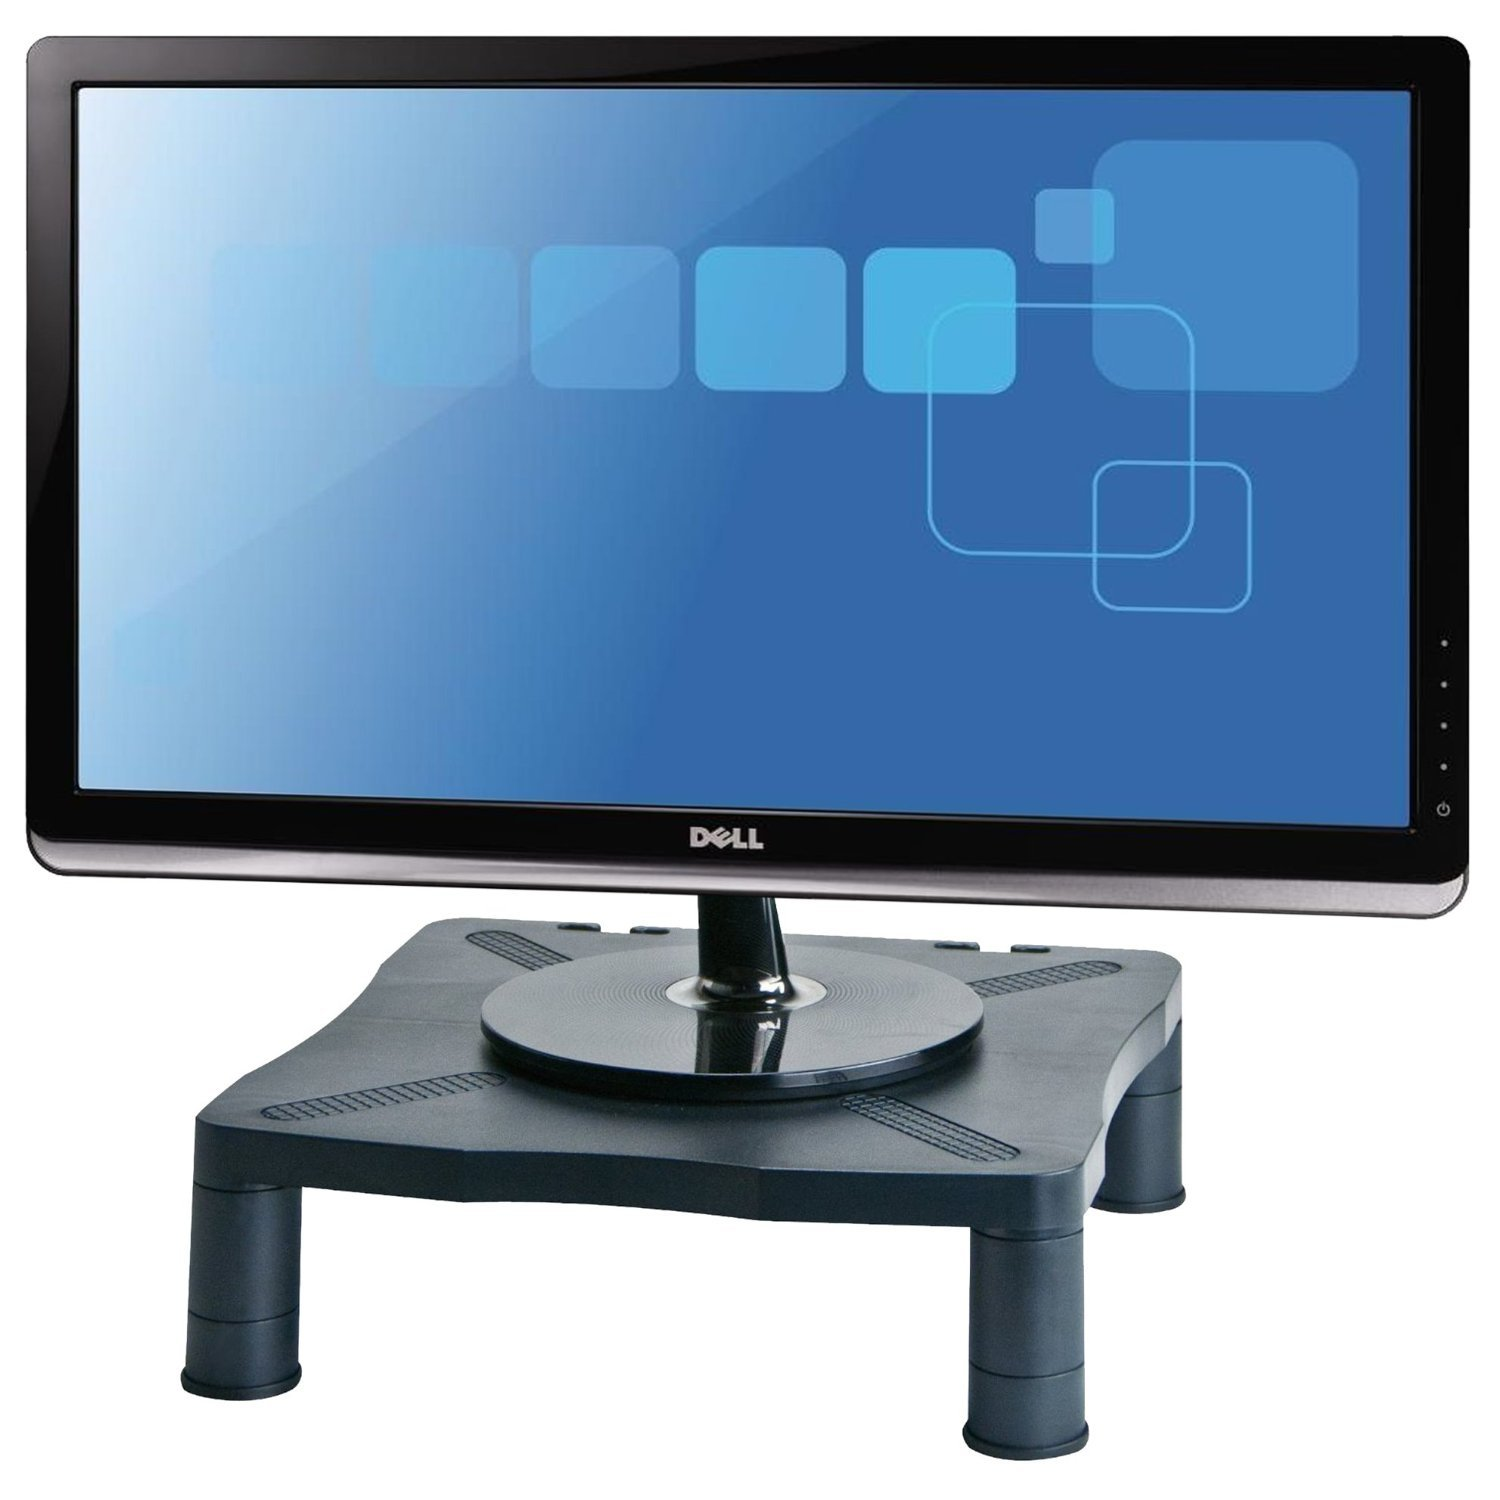 Amazon.com: Halter Height Adjustable Monitor Stand - Printer Stand ...